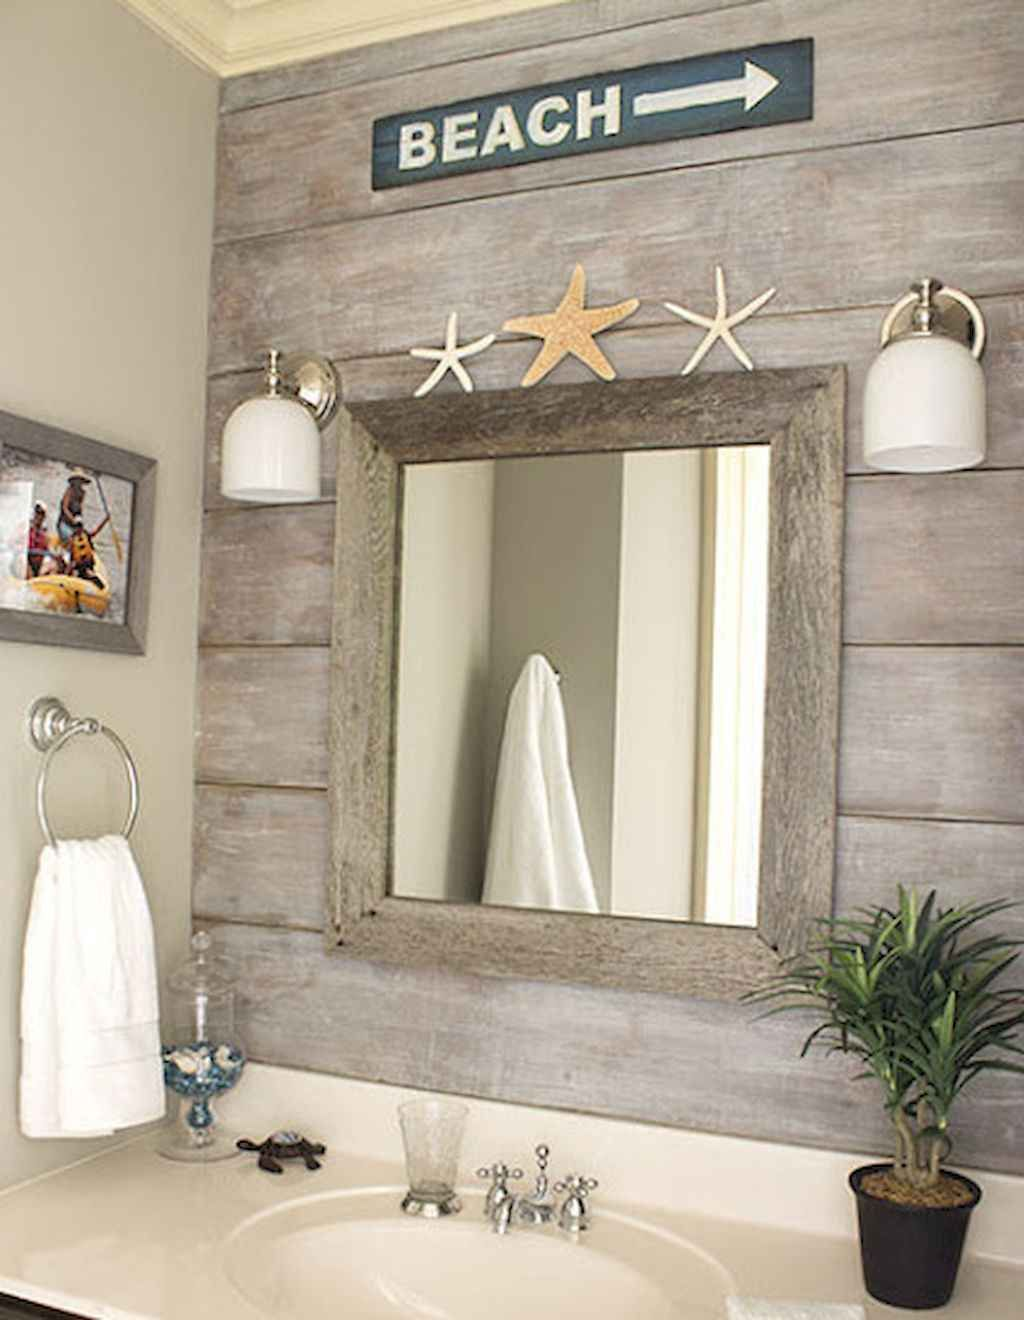 Bathroom Remodel With Stikwood: 20+ AMAZING COASTAL NAUTICAL BATHROOM REMODEL IDEAS